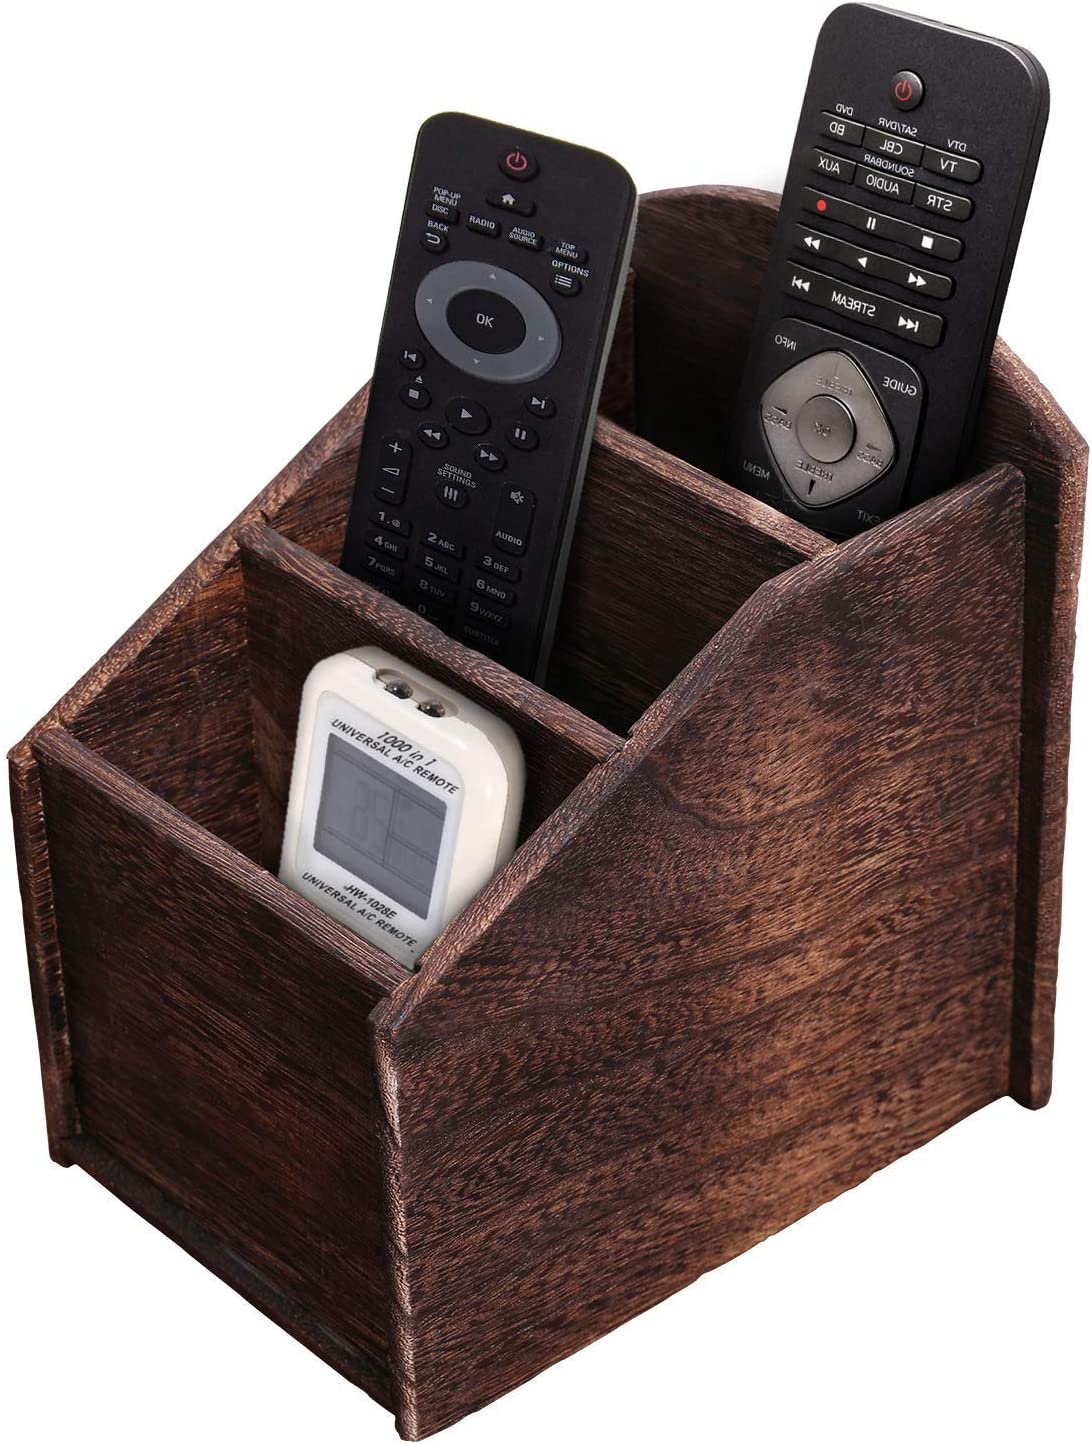 Rustic 3-Slot Wooden Remote Control Holder – Caddy Holder for Multimedia, Office or Desk Supplies – Modern Farmhouse Décor for Living Room – Distressed, Torched Brown Color